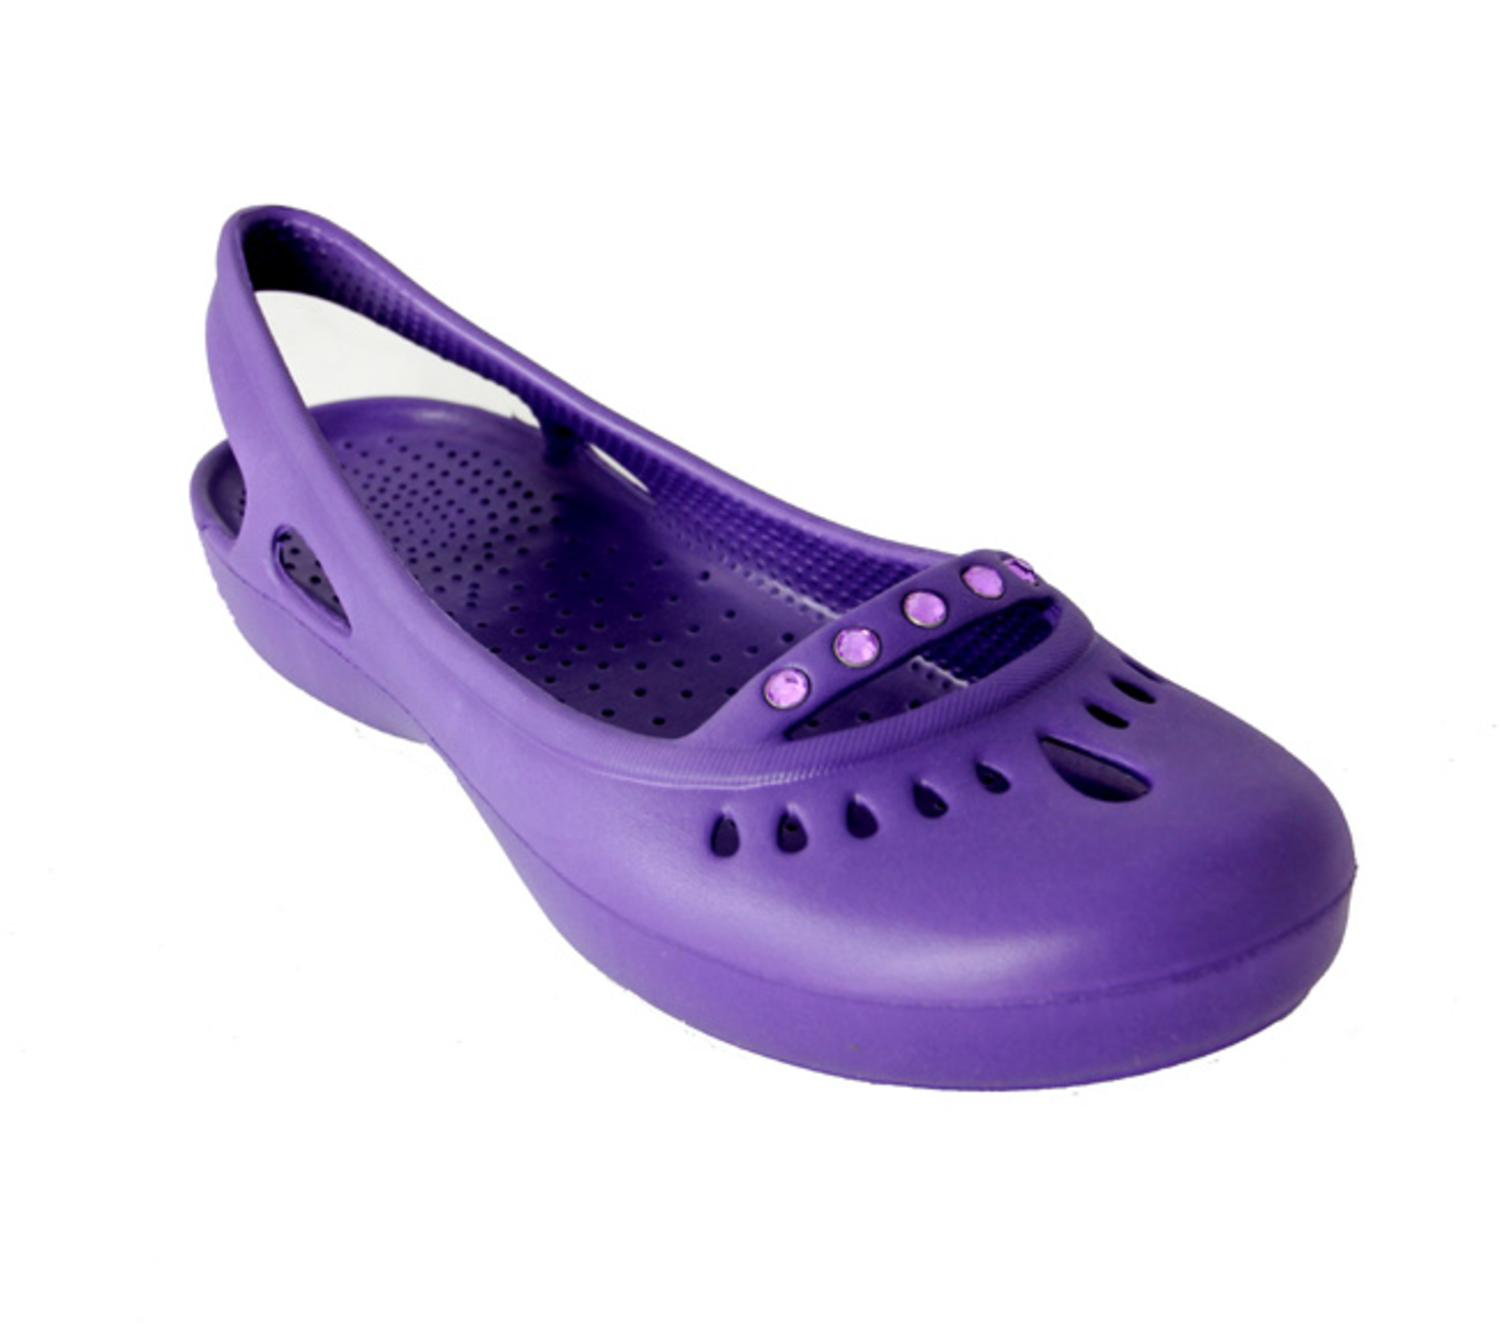 Women's Purple Lightweight Slip-On Comfort Shoes with Gem Accents - Size 6